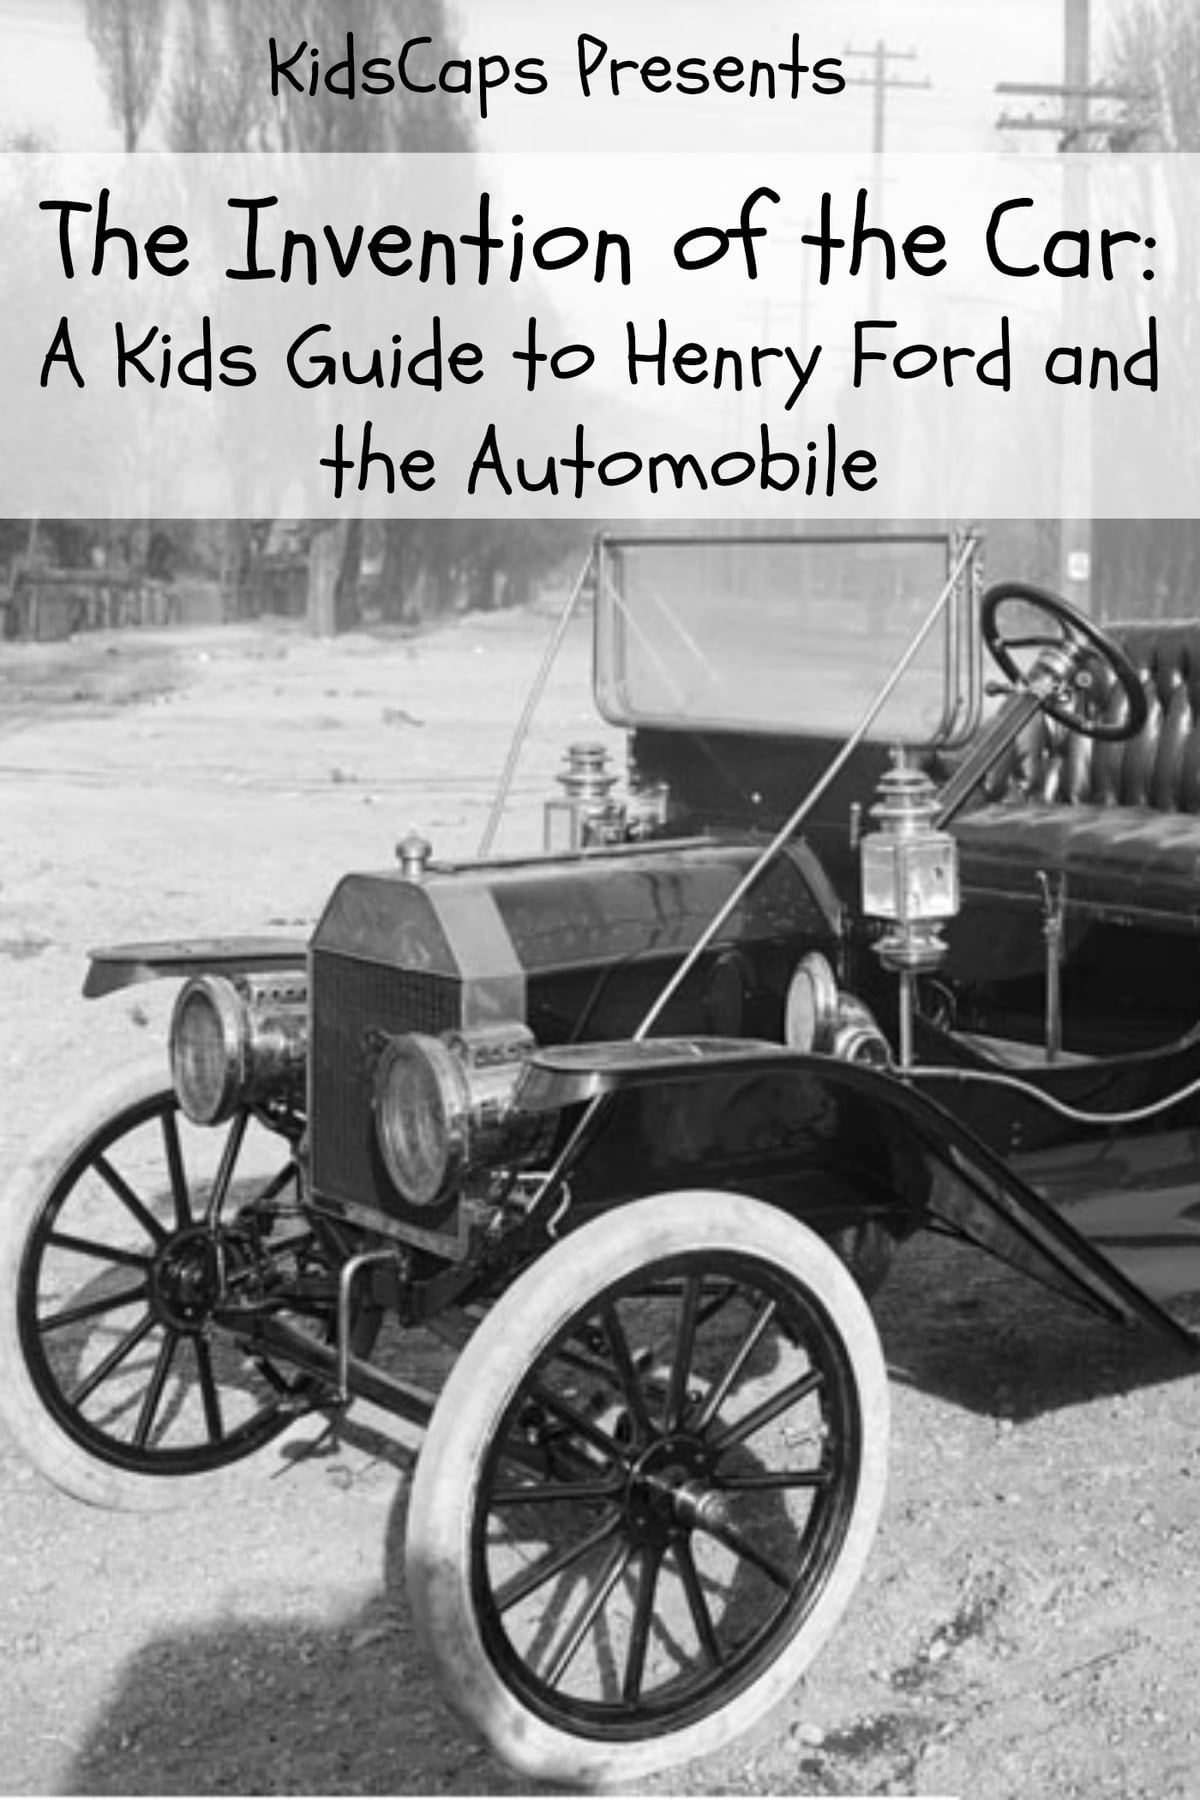 life and influential inventions of henry ford Facts about henry ford who has 161 unique patents to his name ford also  attempted  learn more about his life and work  he was not the inventor of the  automobile, which is generally accredited wrongly to him however.